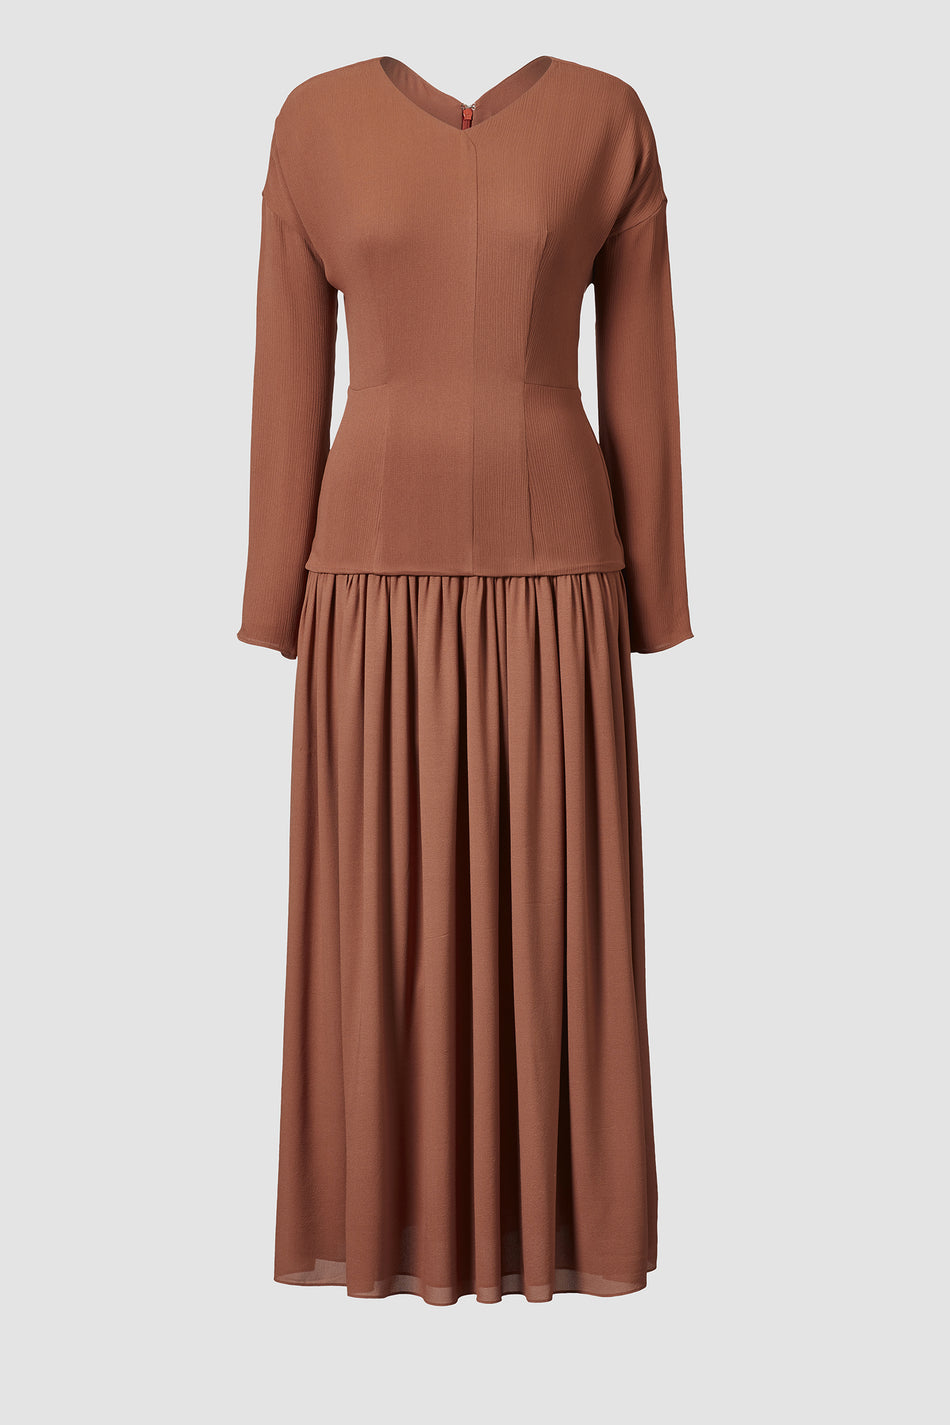 Tove Etienne Long Sleeved Dress Rust